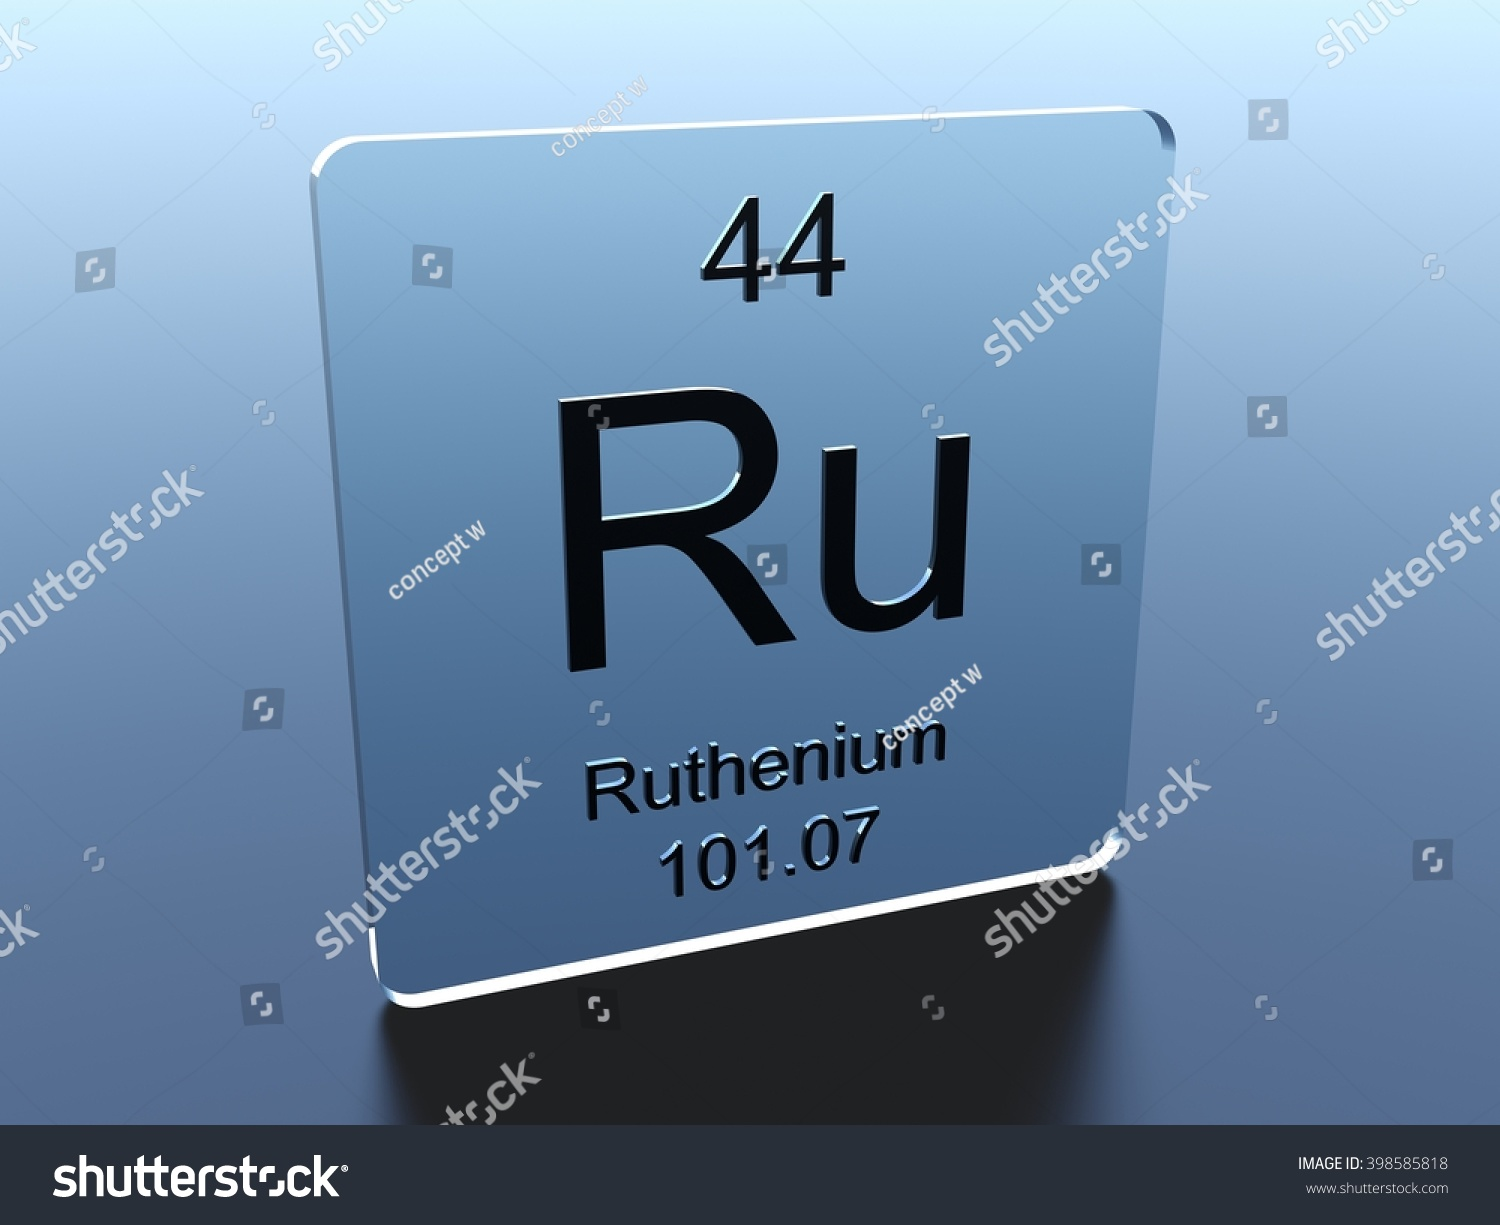 Square up stock symbol images symbol and sign ideas ruthenium symbol on glass square stock illustration 398585818 ruthenium symbol on a glass square buycottarizona images buycottarizona Choice Image